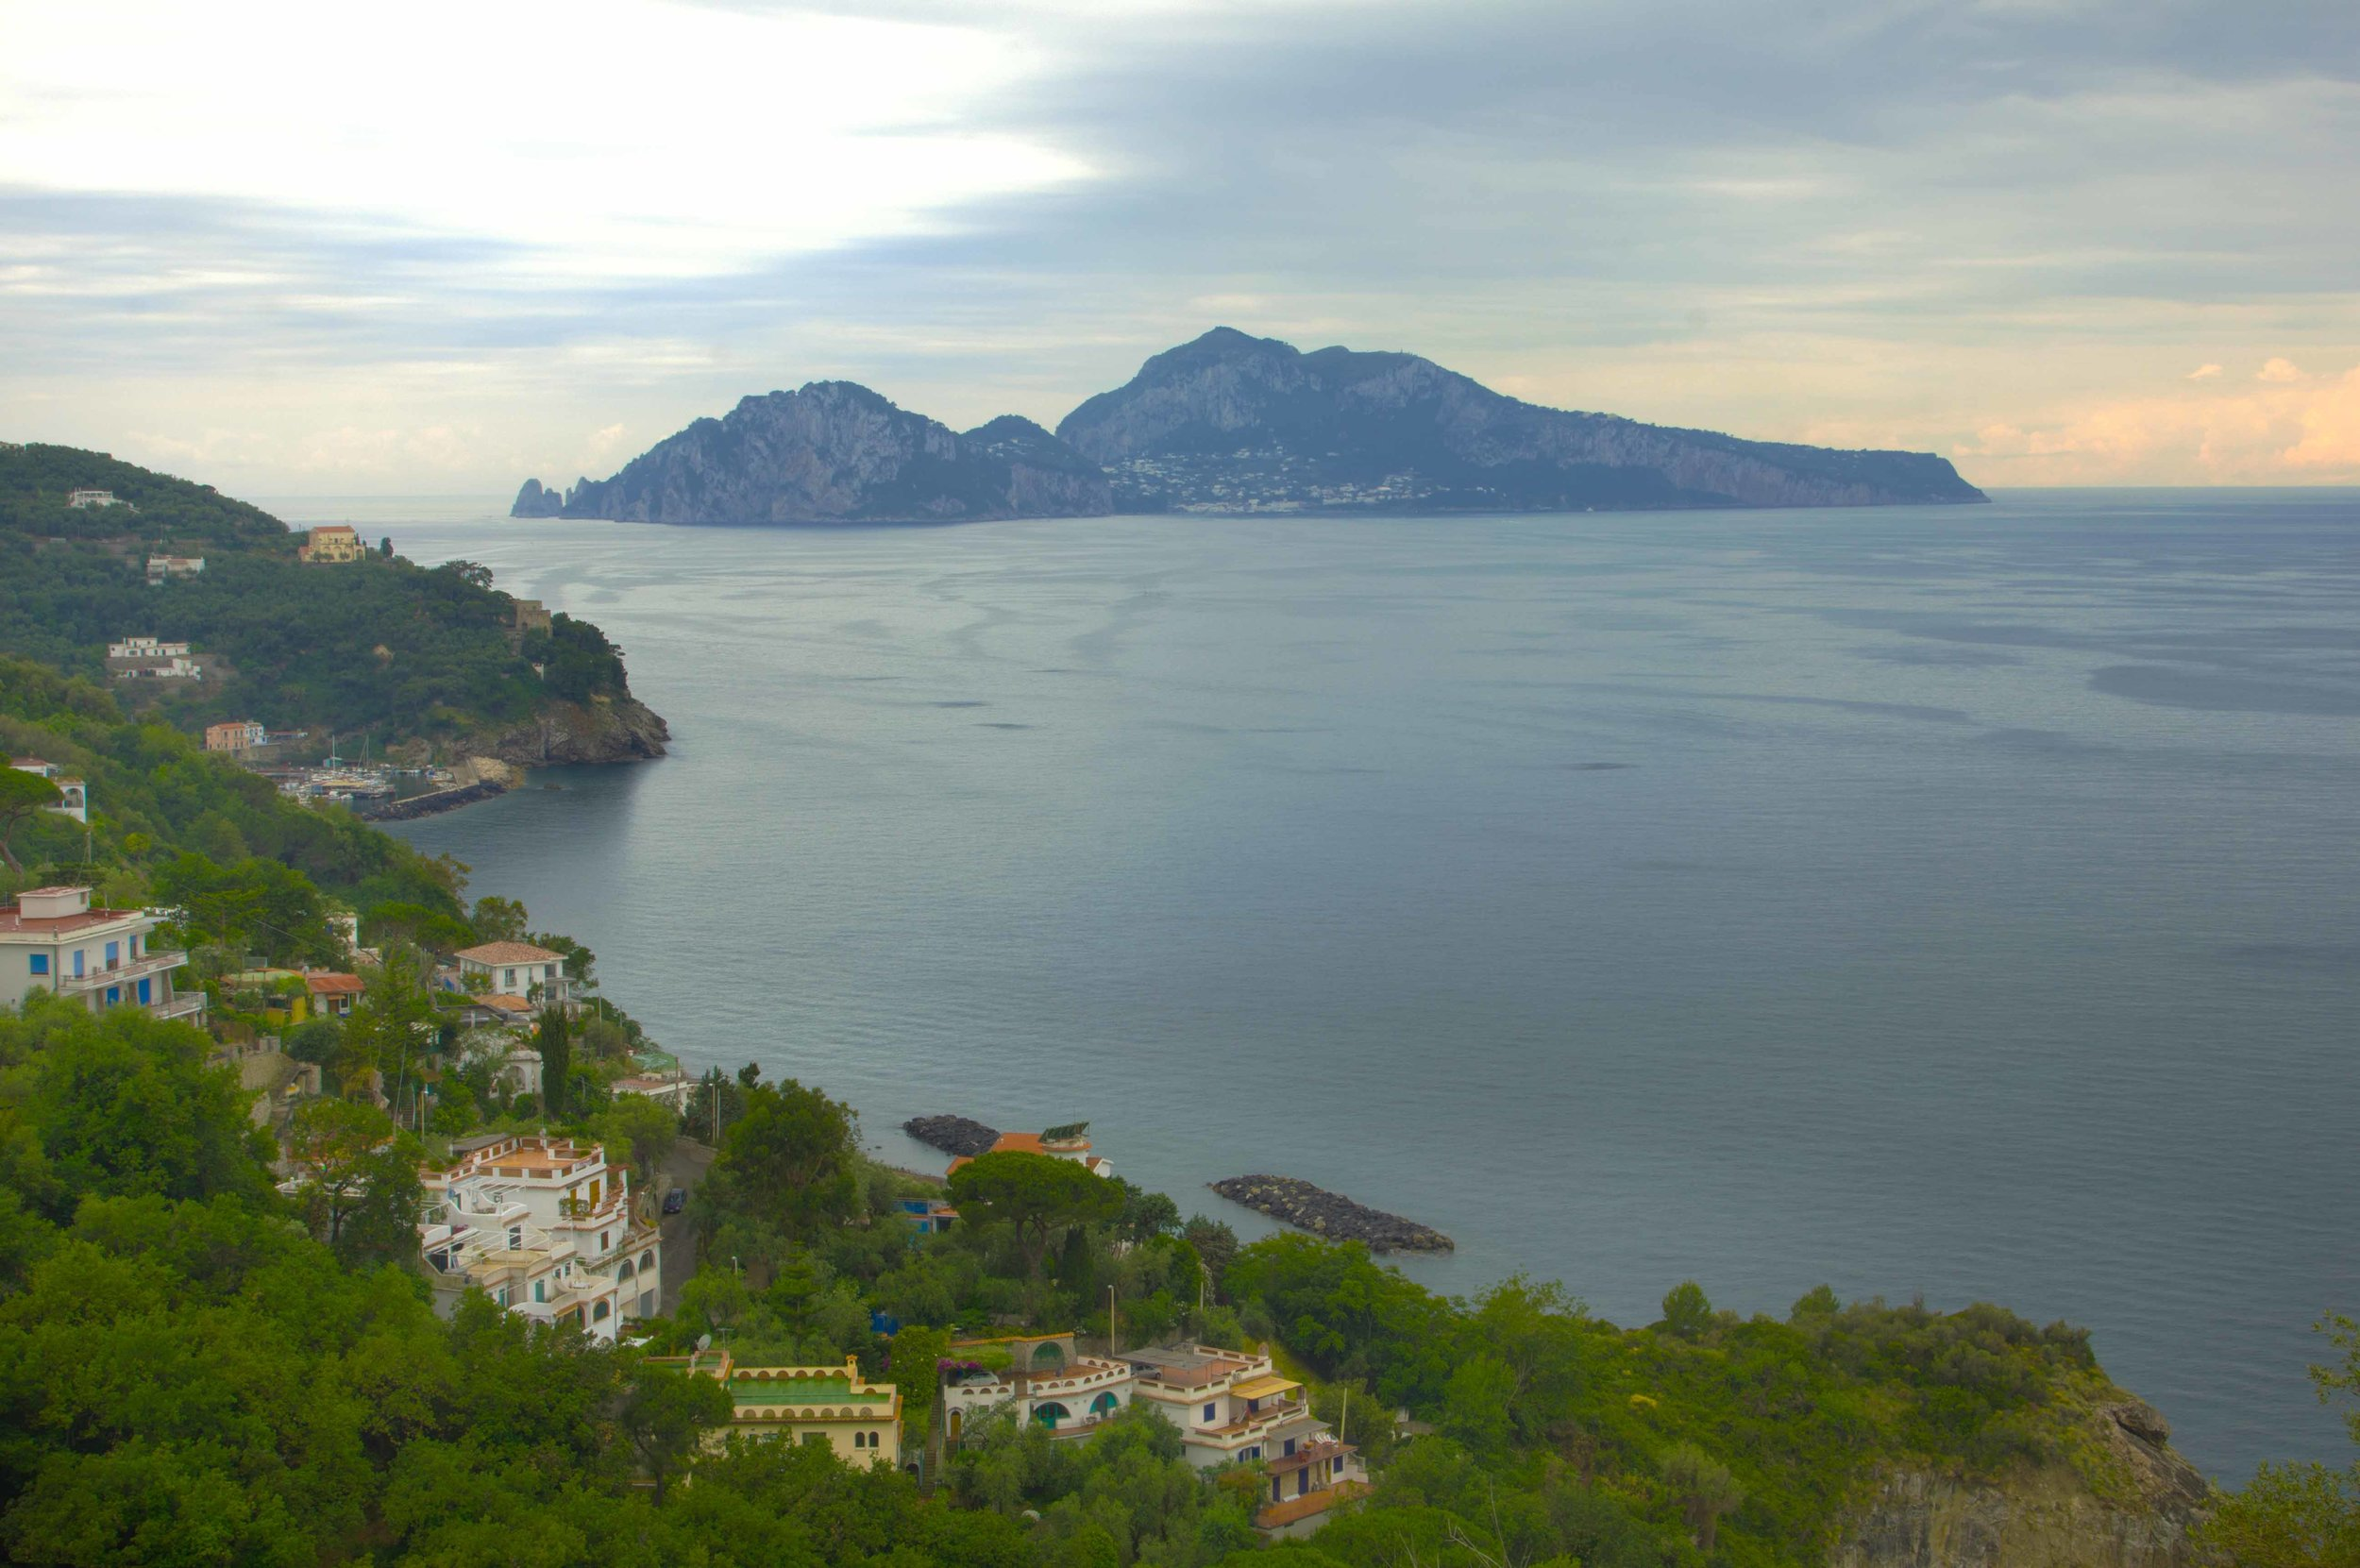 Top 10 Things to do in Sorrento - Sorrento itself is very close to such historical places as Pompeii, Herculaneum and Capri. All of which are beautiful and interesting in their own right. Pompeii is well known as being the city that was destroyed and preserved by Mt Vesuvius.....